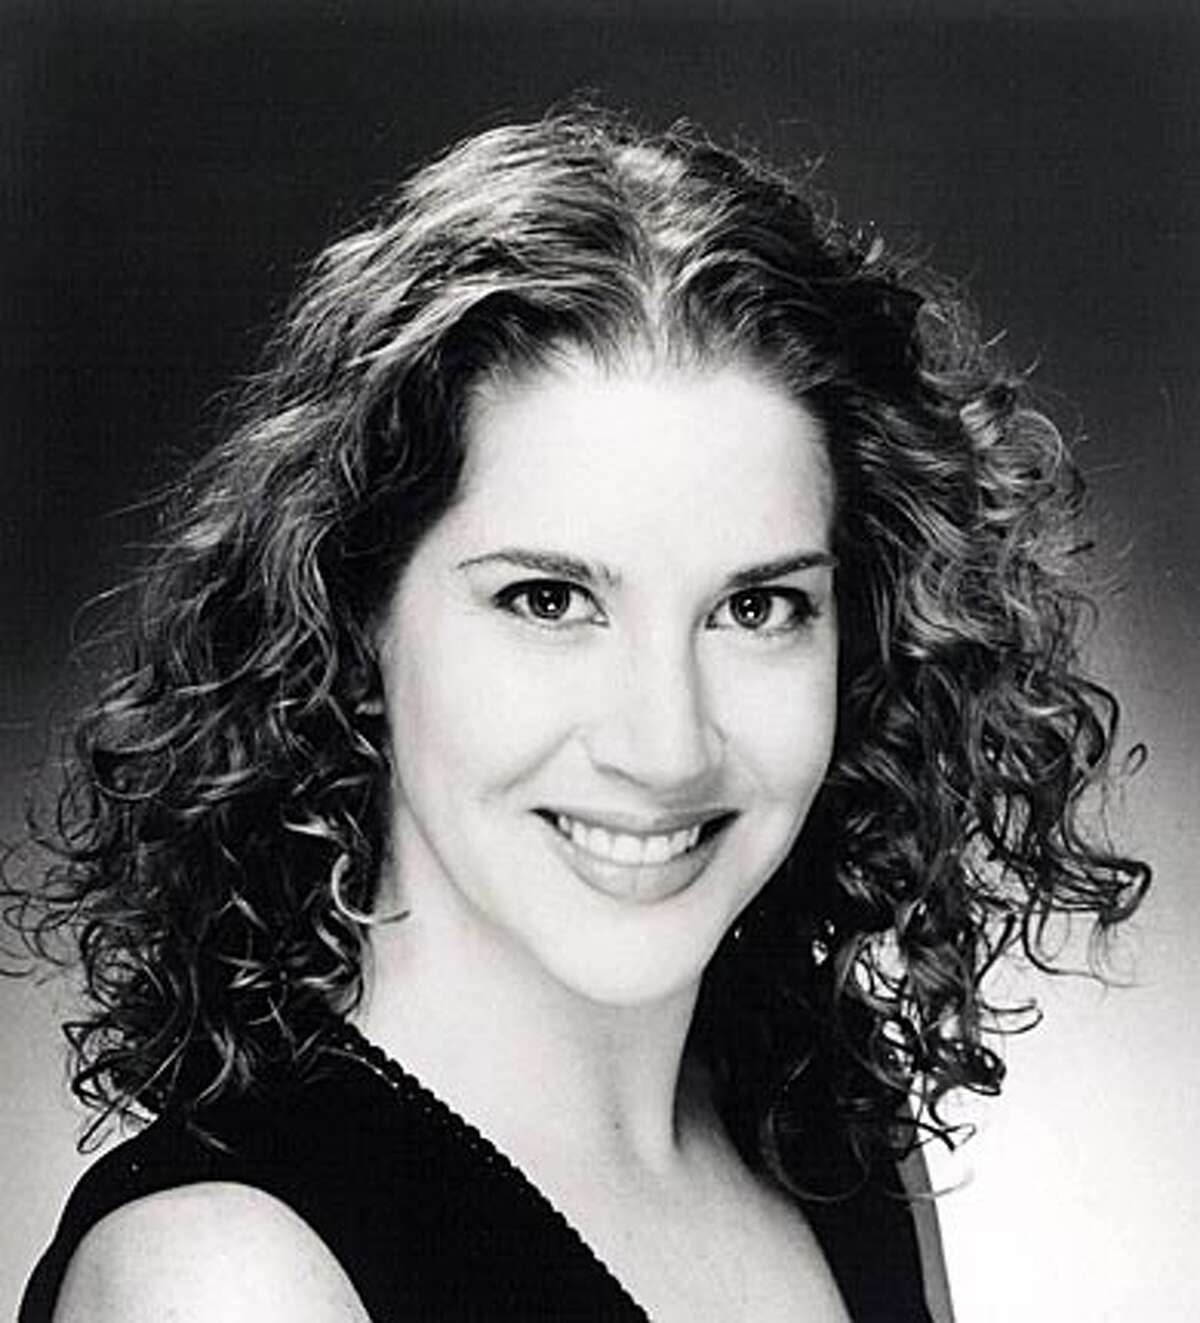 Soprano Heidi Moss with the Livermore Opera Company, takes part in Opera in the Park on June 24, 2005.